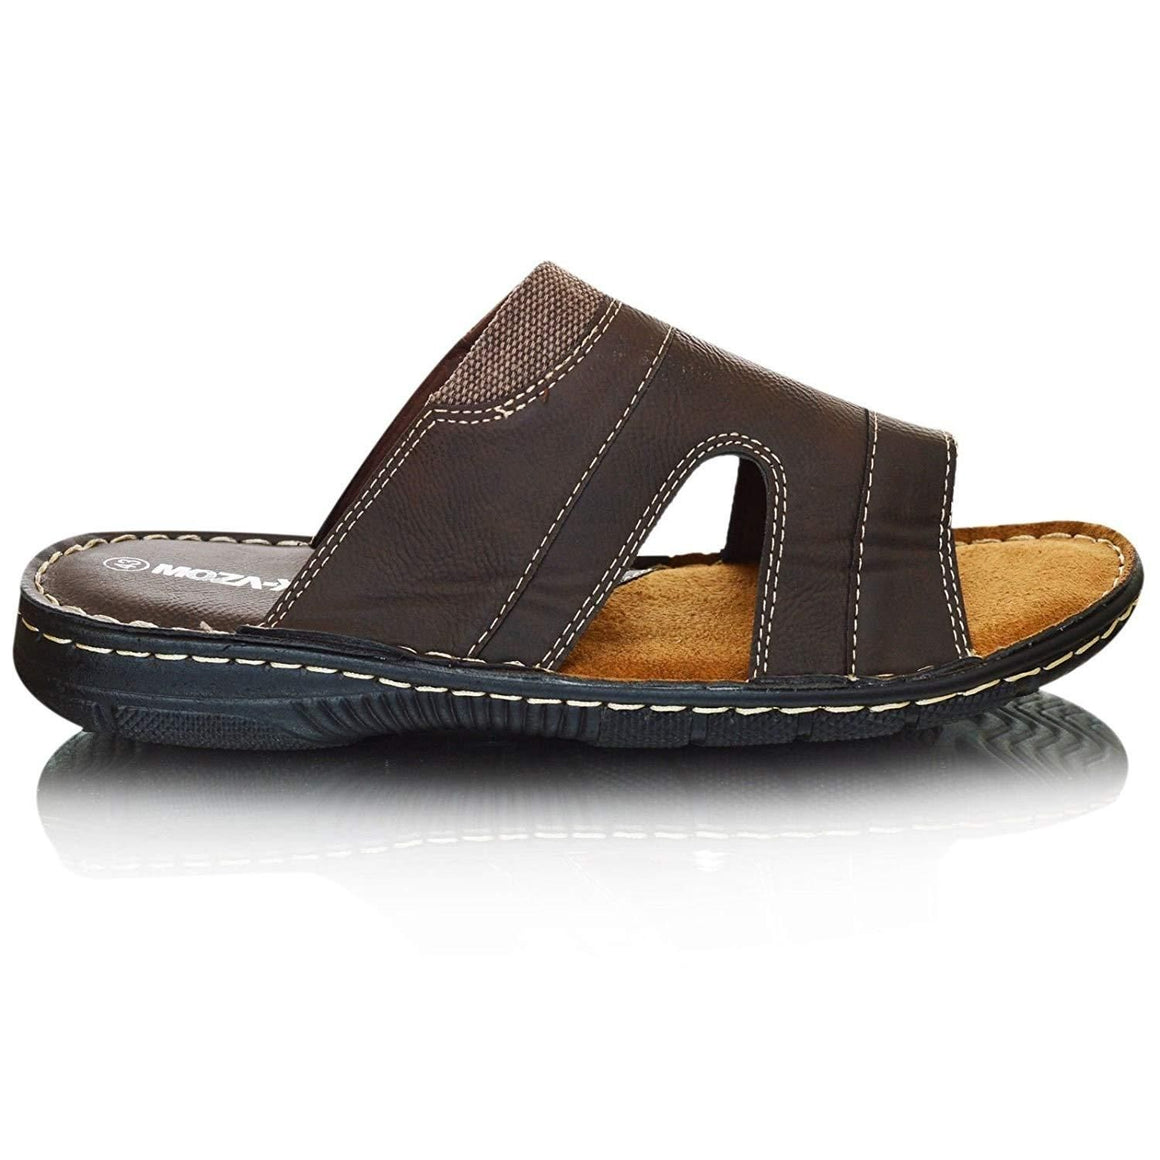 Mens Leather Comfort Mules Sandals Flip Flops Cushioned